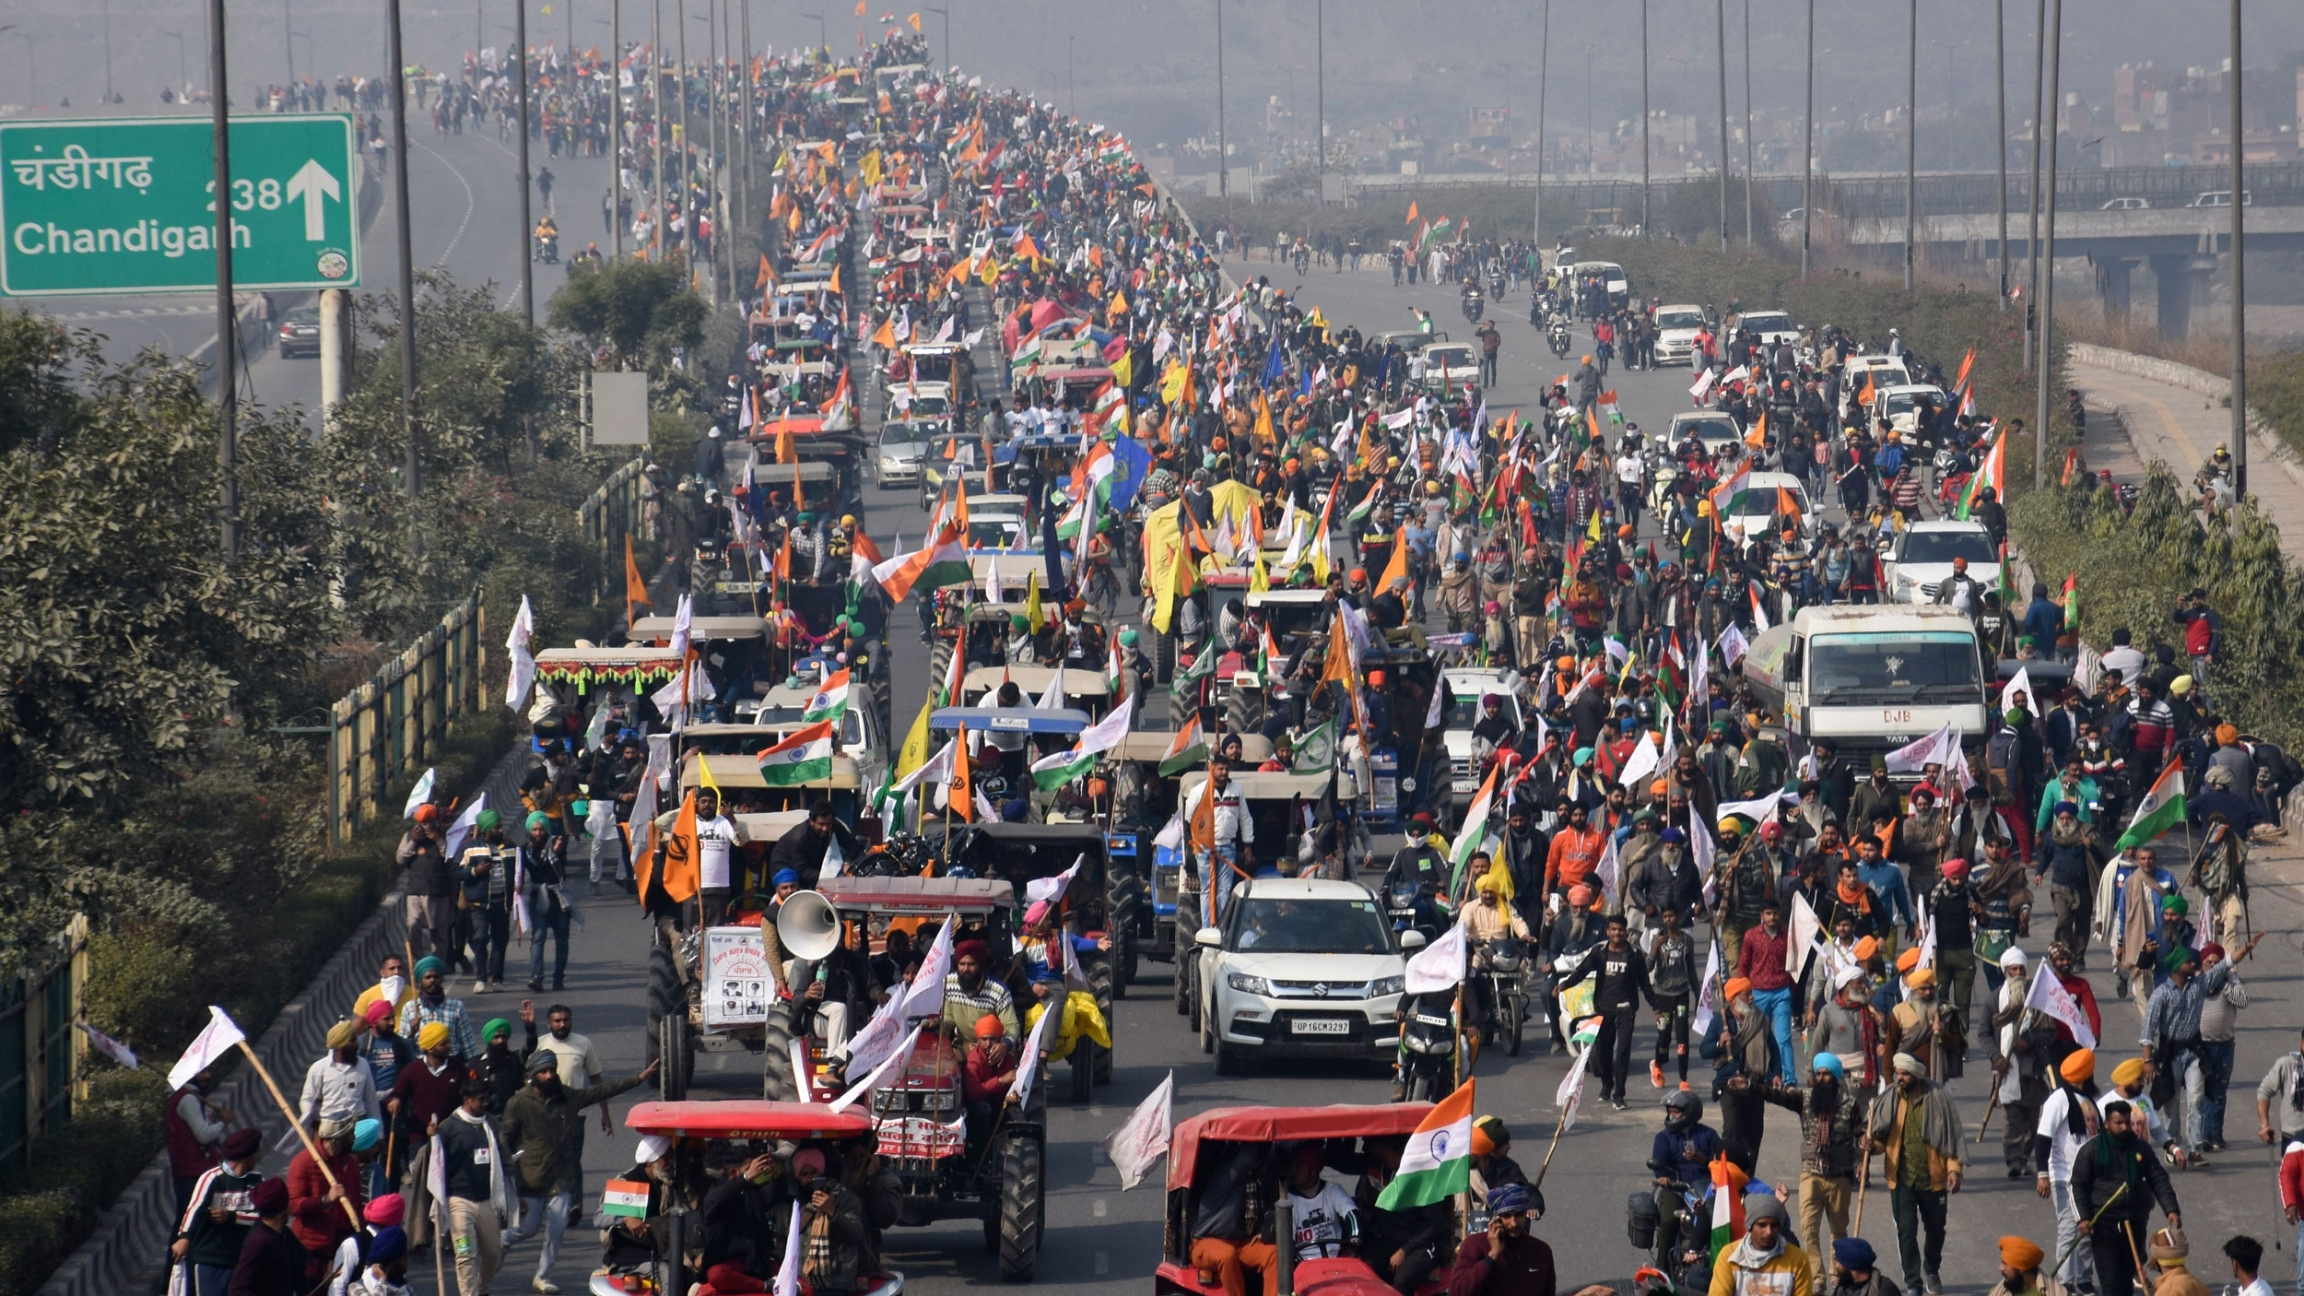 A multiple lane road is shown filled with protesters driving tractors and other vehicles with thousands of people shown all over the road.